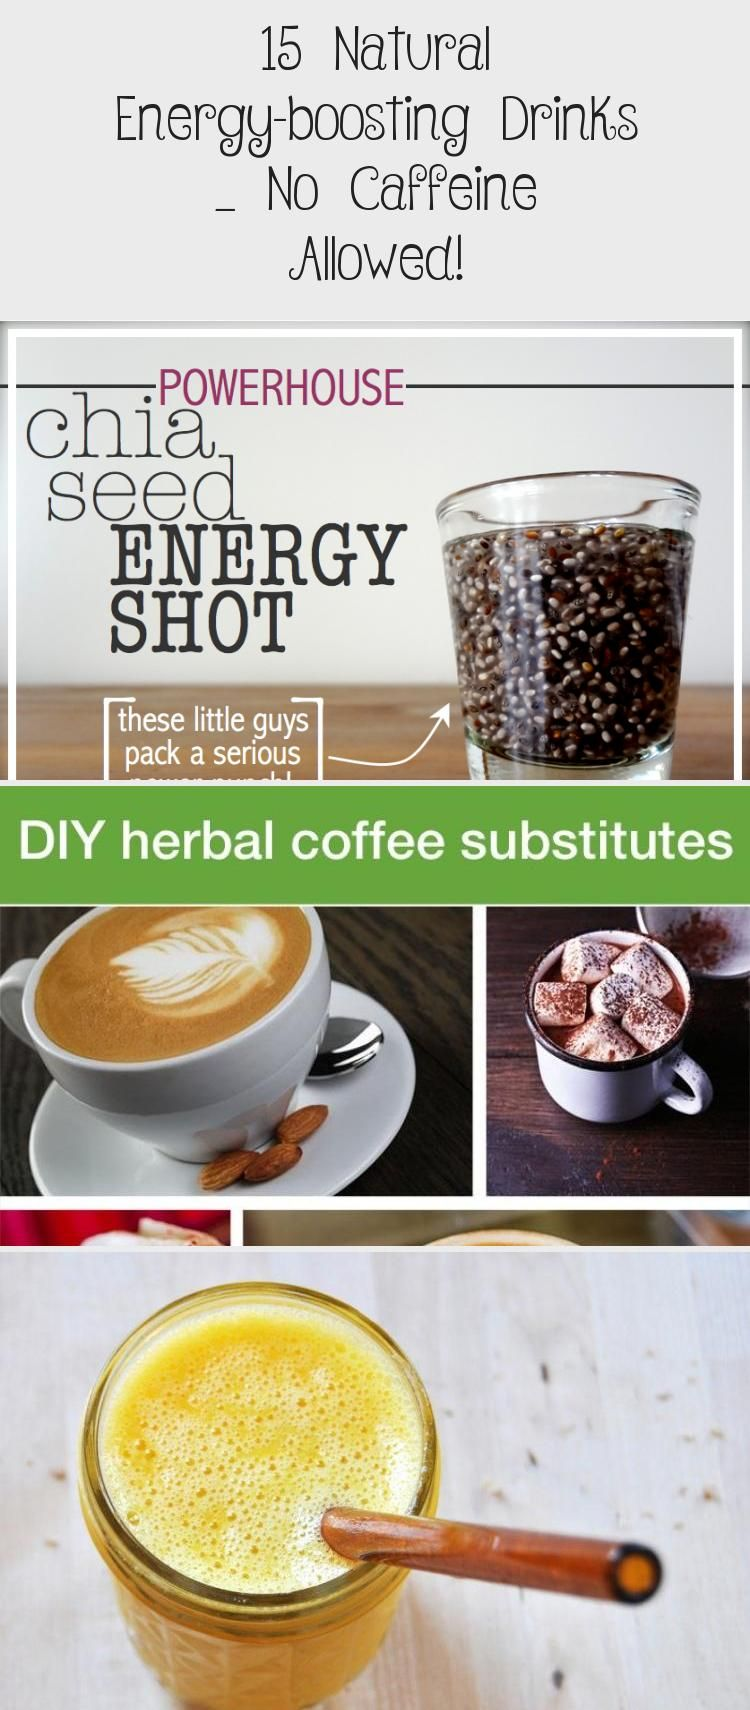 12 Natural Energy Boosting Drinks No Caffeine Allowed What If We Give Up The Fleeting Artif In 2020 Natural Energy Healthy Alcoholic Drinks Caffeine Free Drinks